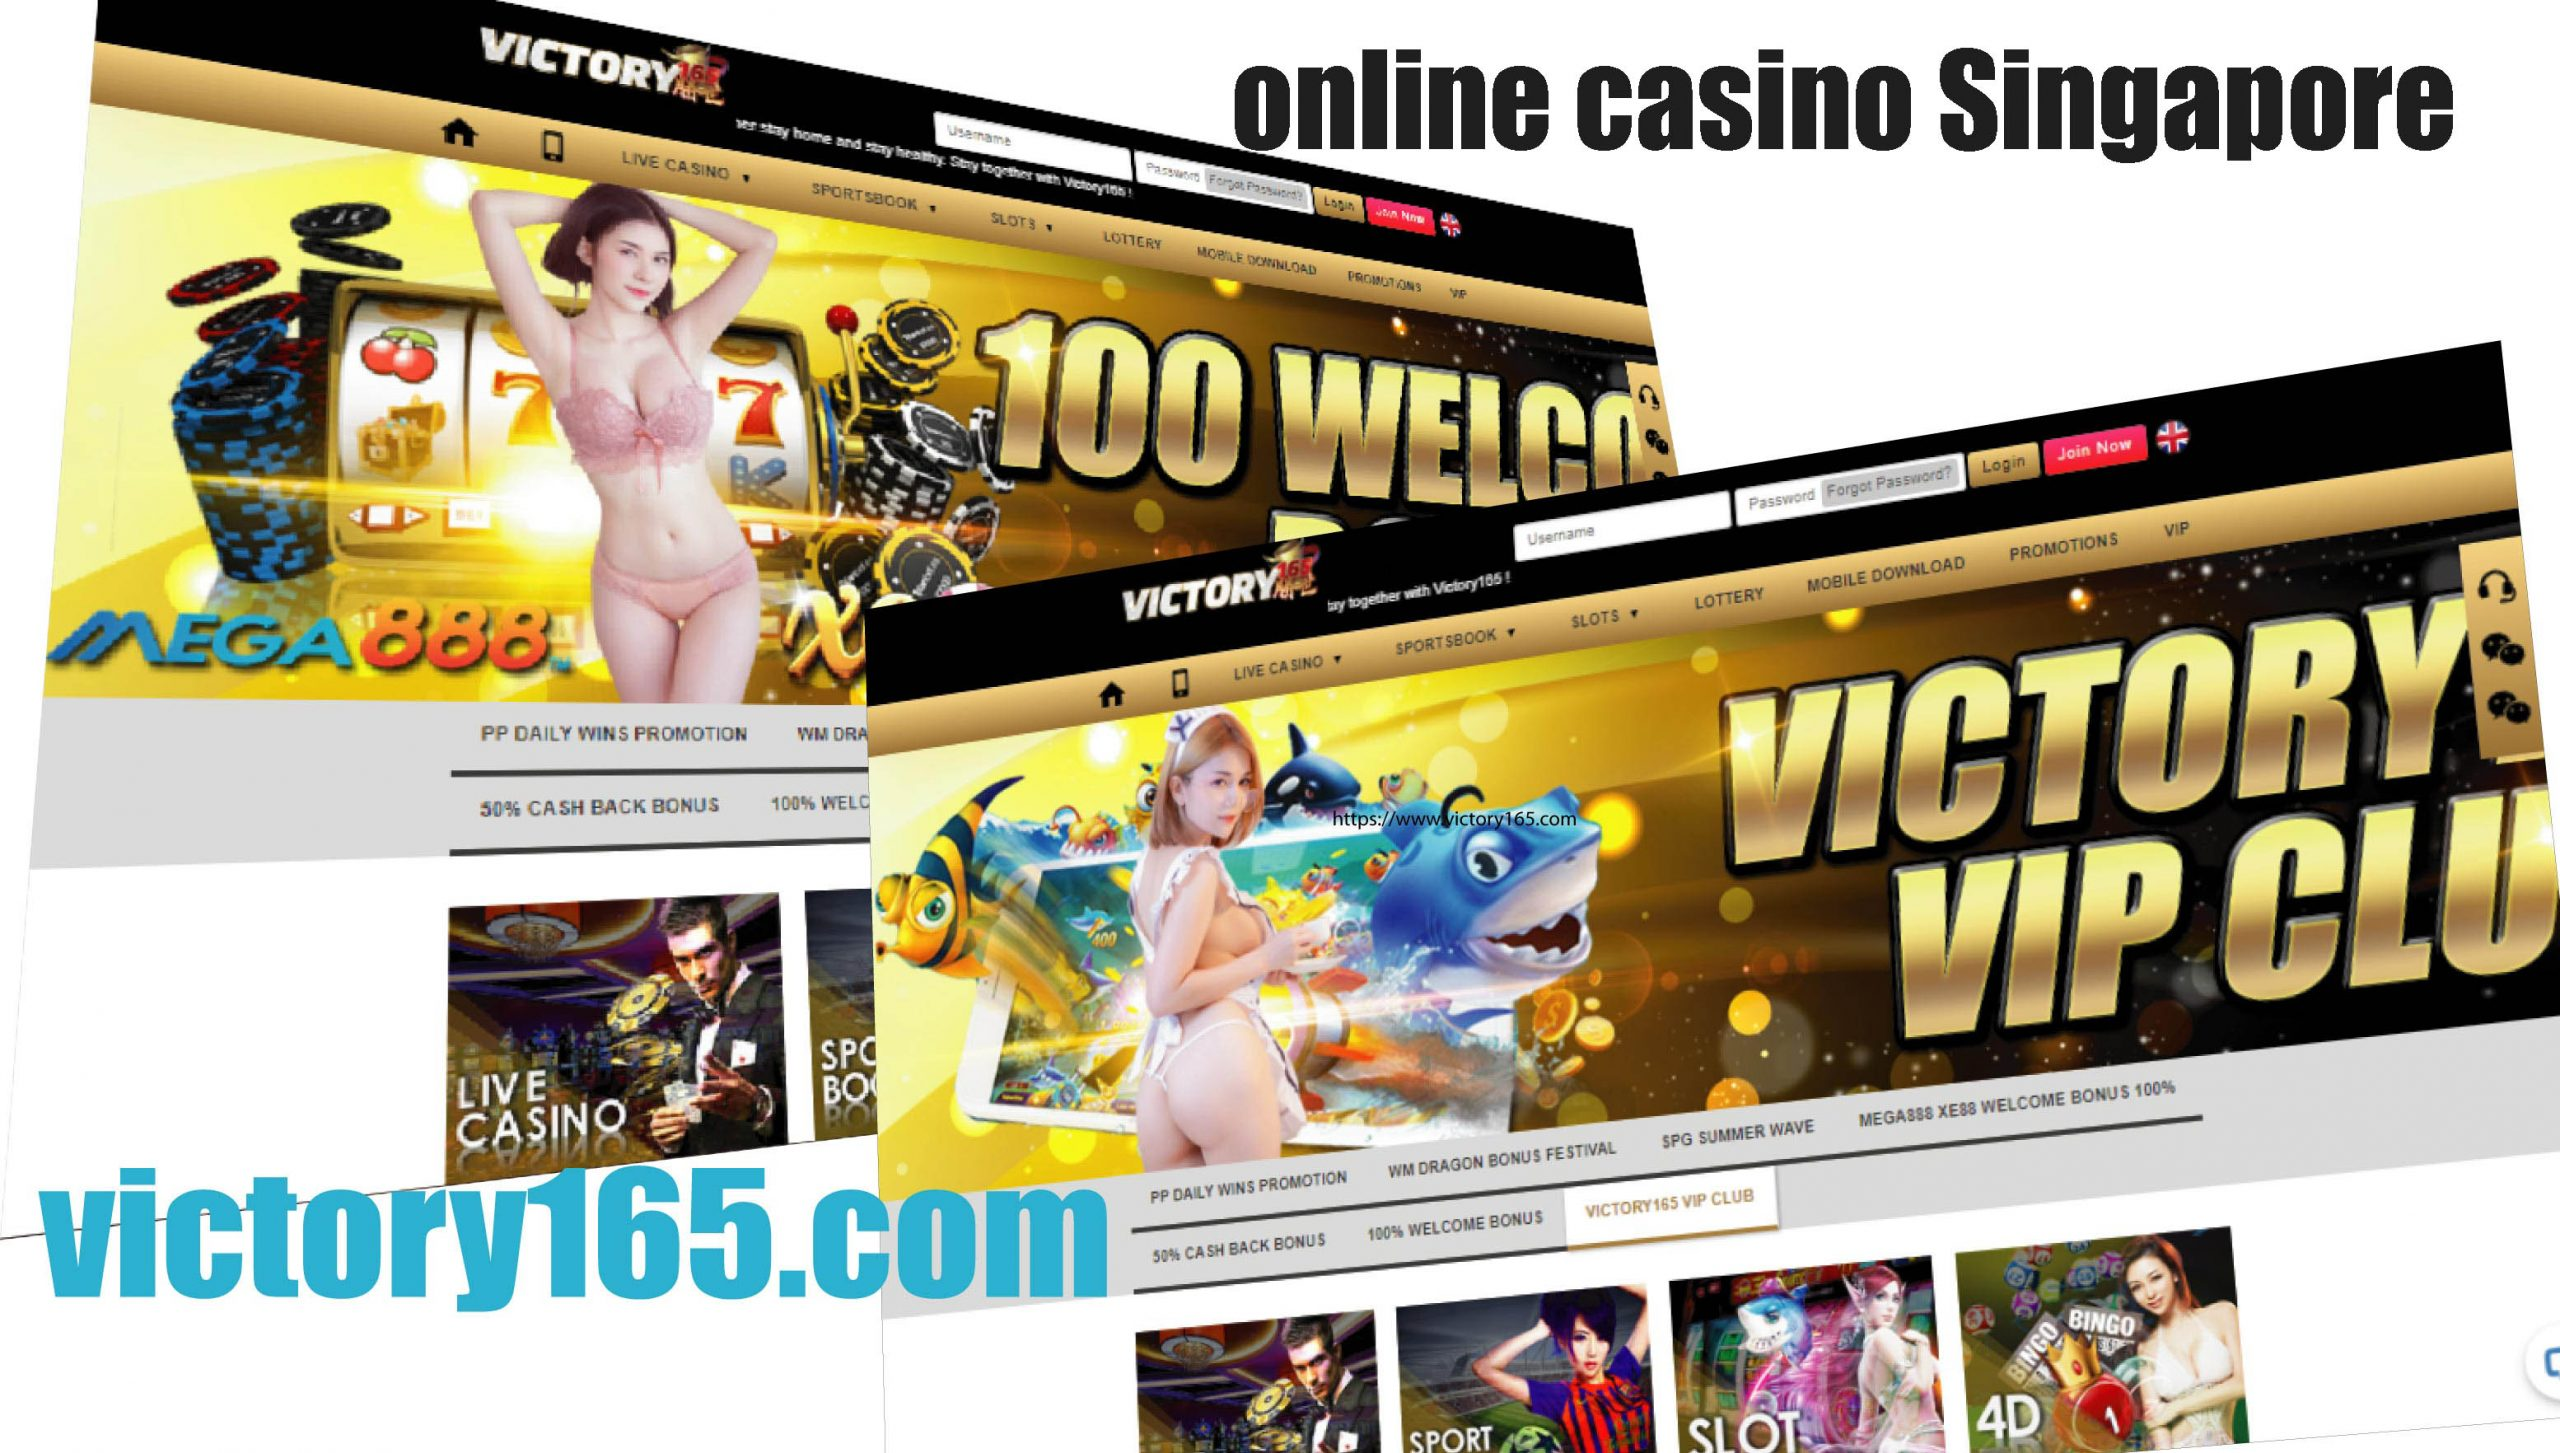 Victory165 Singapore Online Casino Review